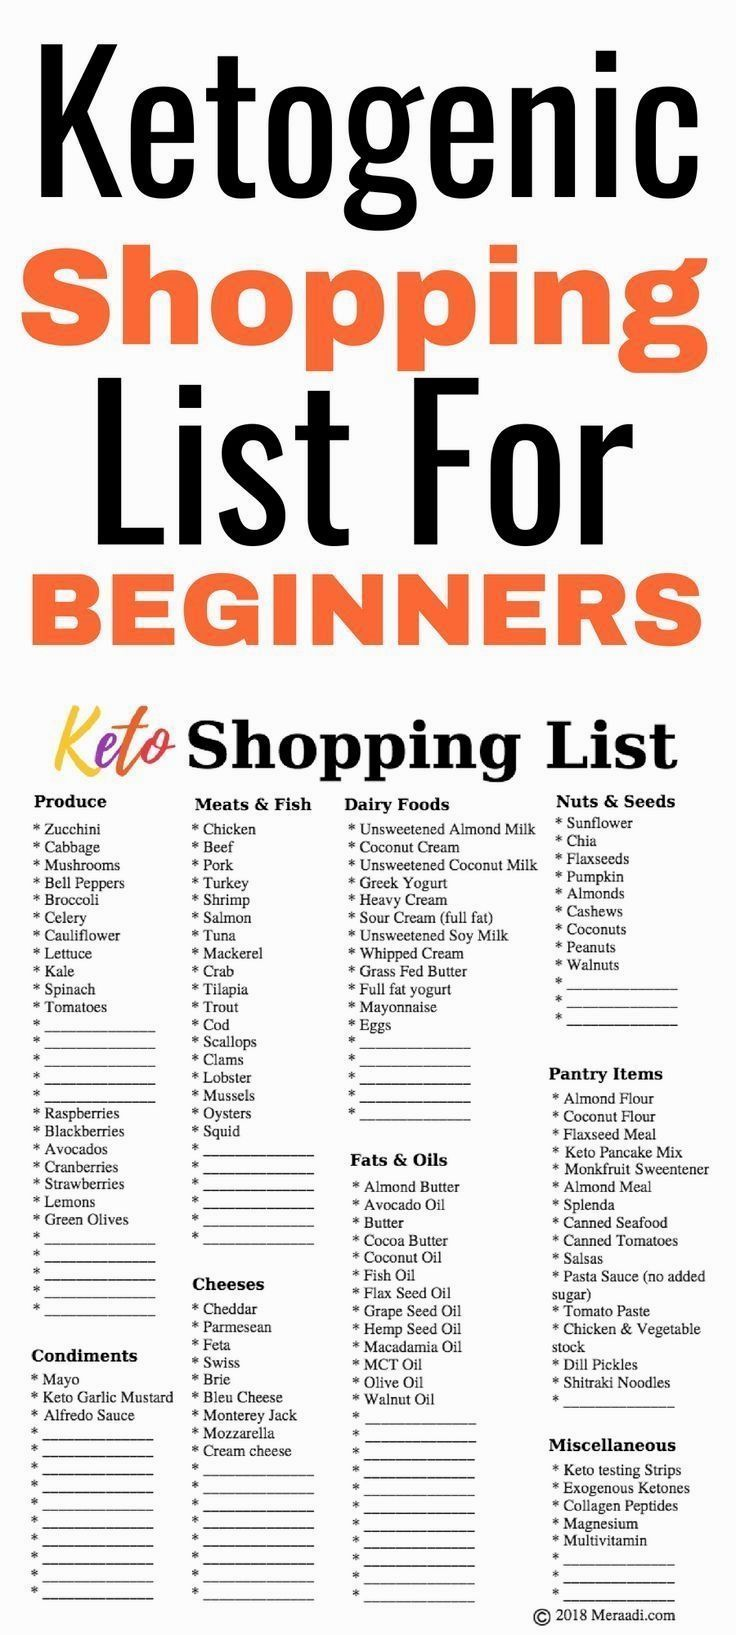 This ketogenic shopping list for beginners lists a /